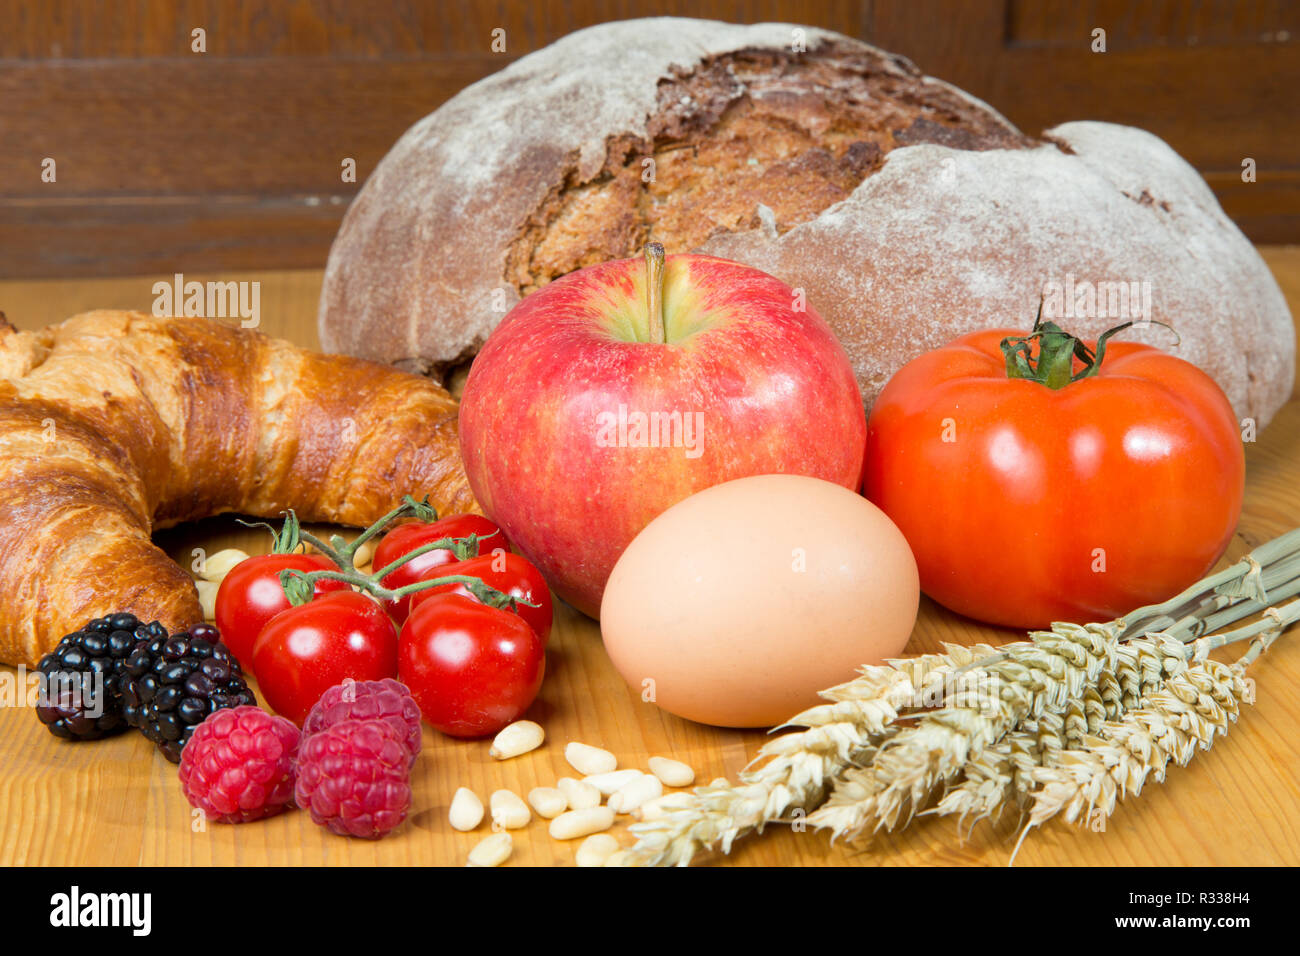 various types of bread and various foods - Stock Image